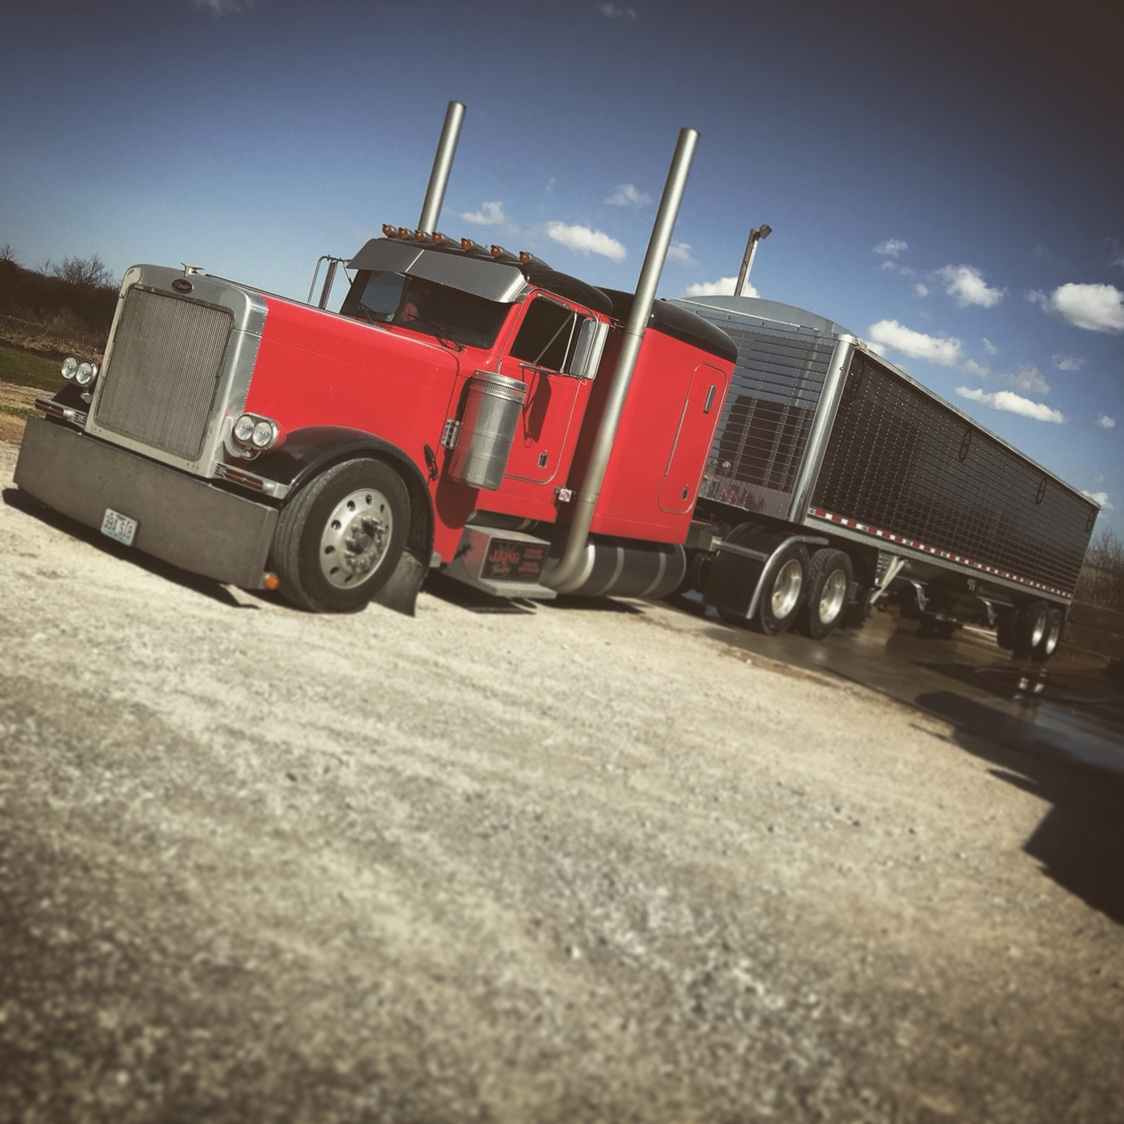 Truckers Lets See Your Rigs Archive Page 65 Competition Diesel Tach Wiring Http Wwwcompetitiondieselcom Forums Showthread Dieselcom Bringing The Best Together